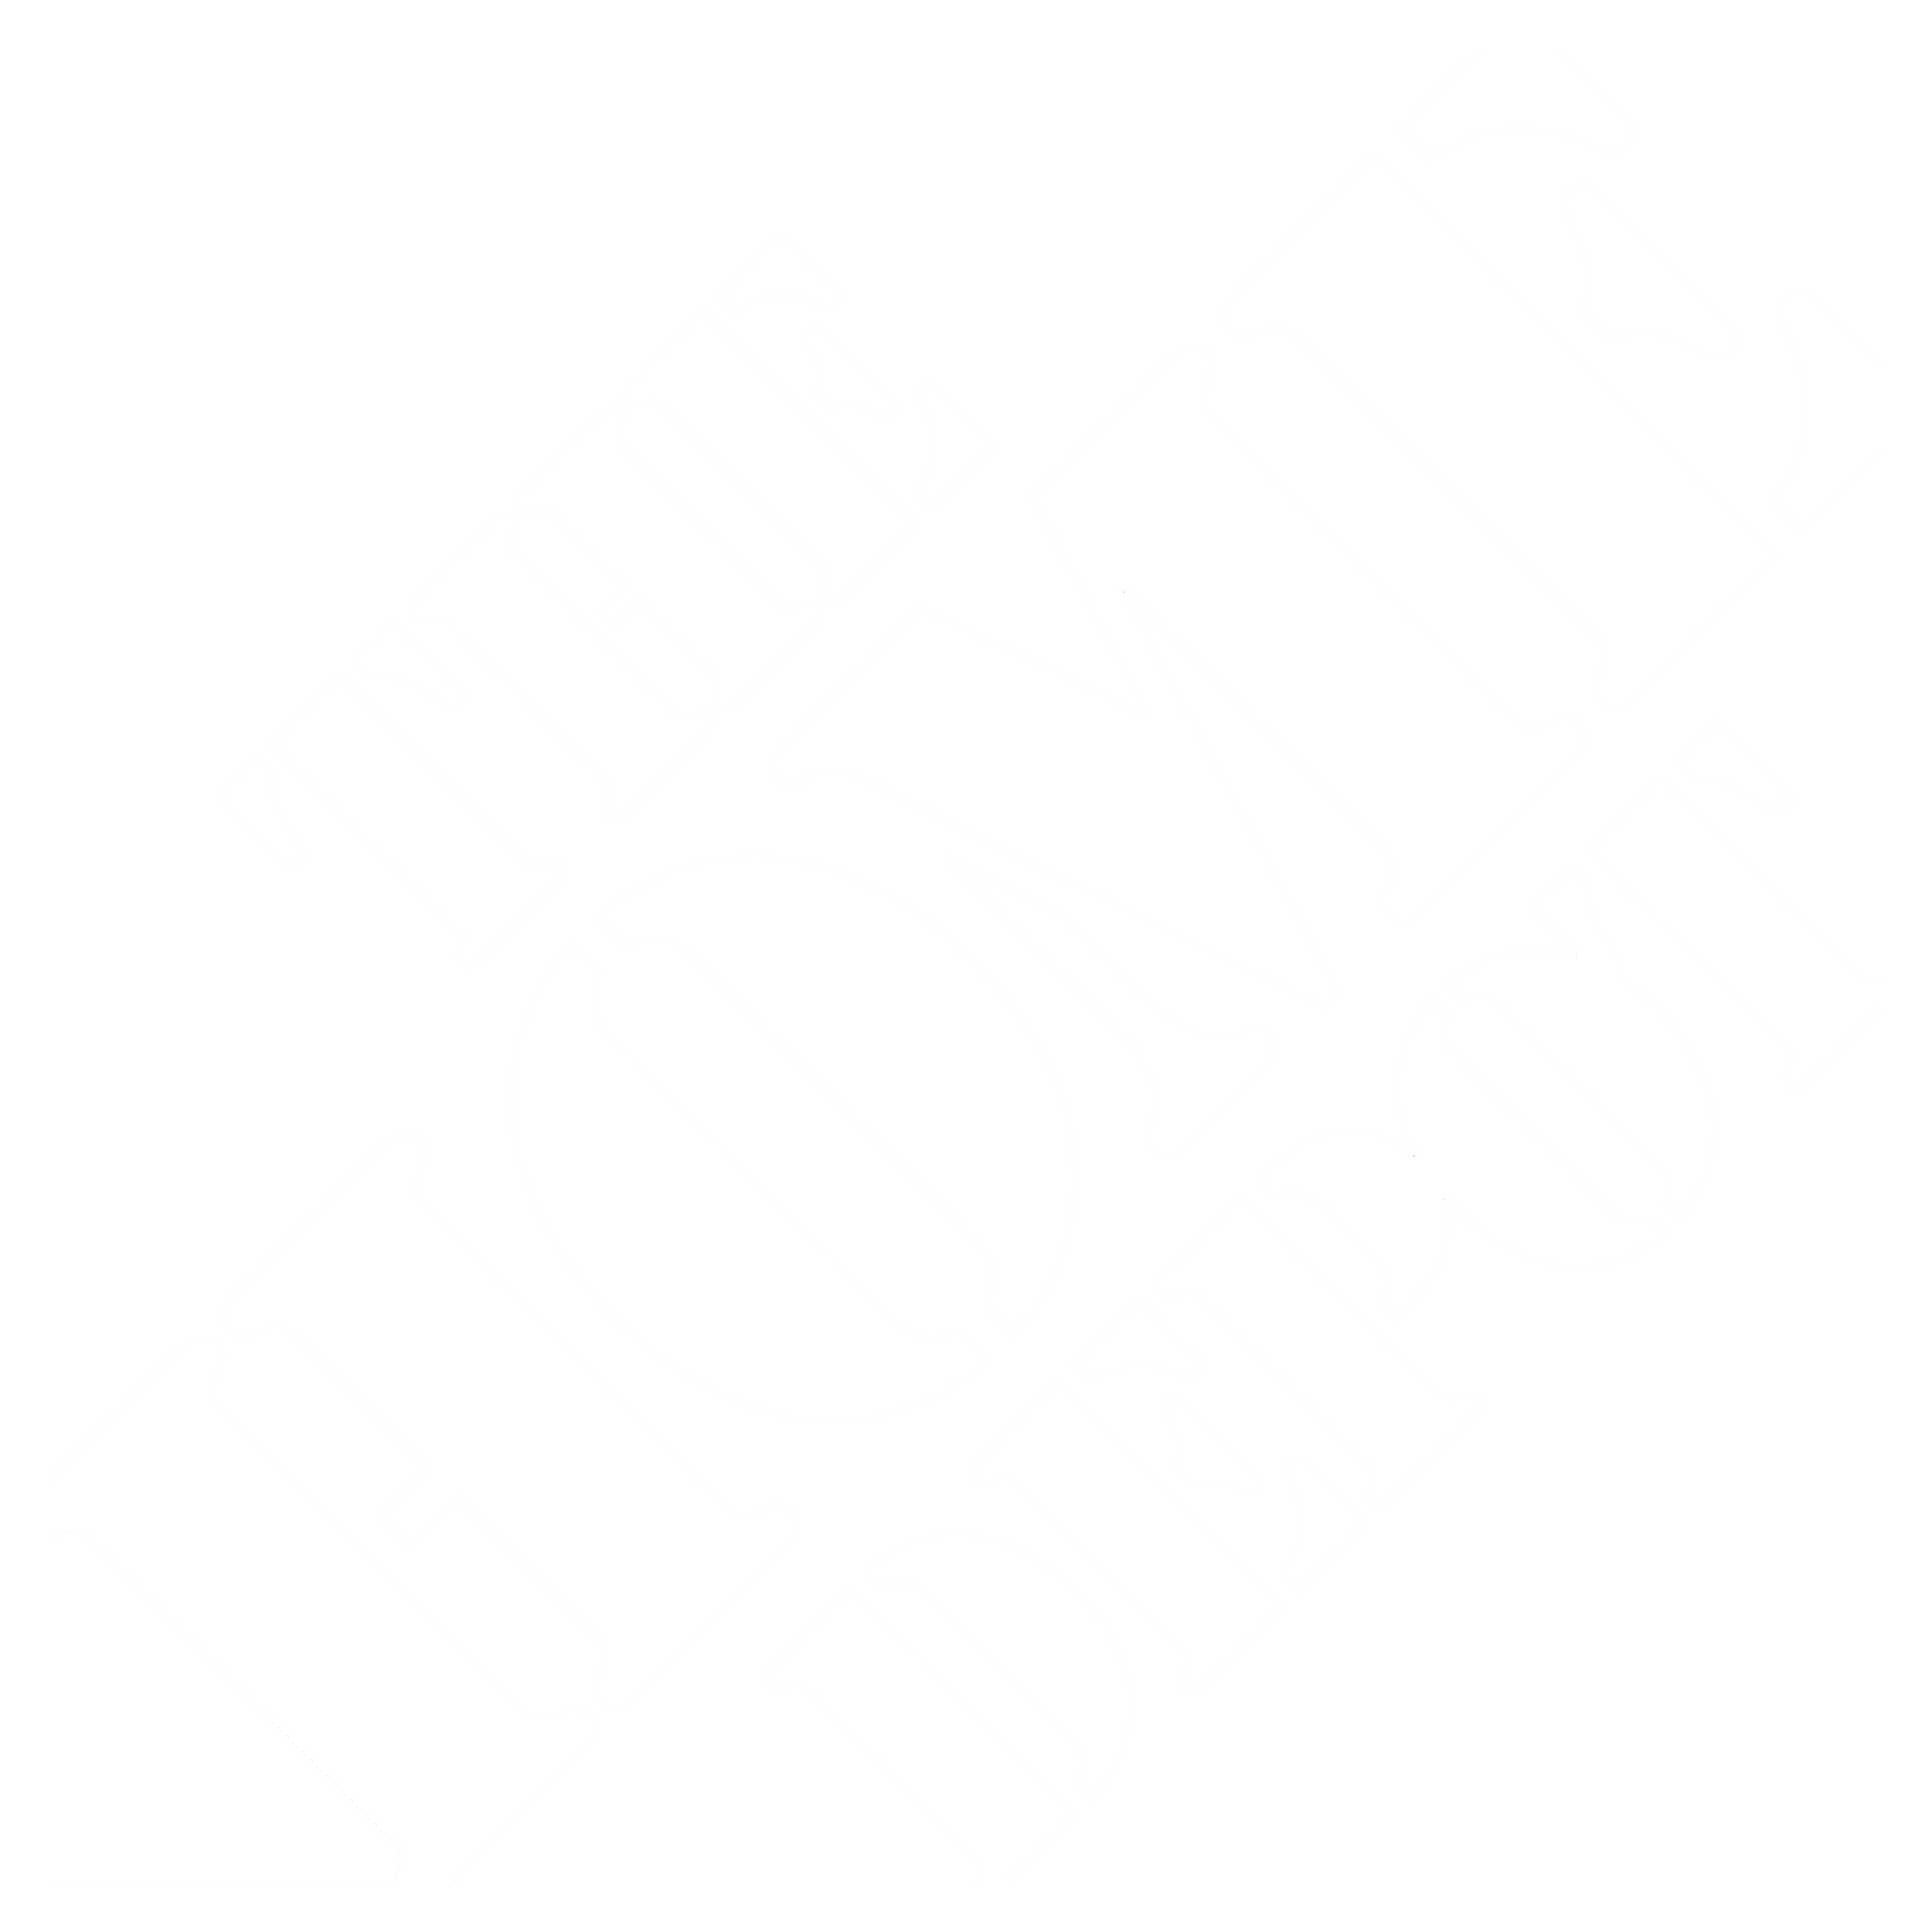 Perks at WorkLogo Home Depot Png